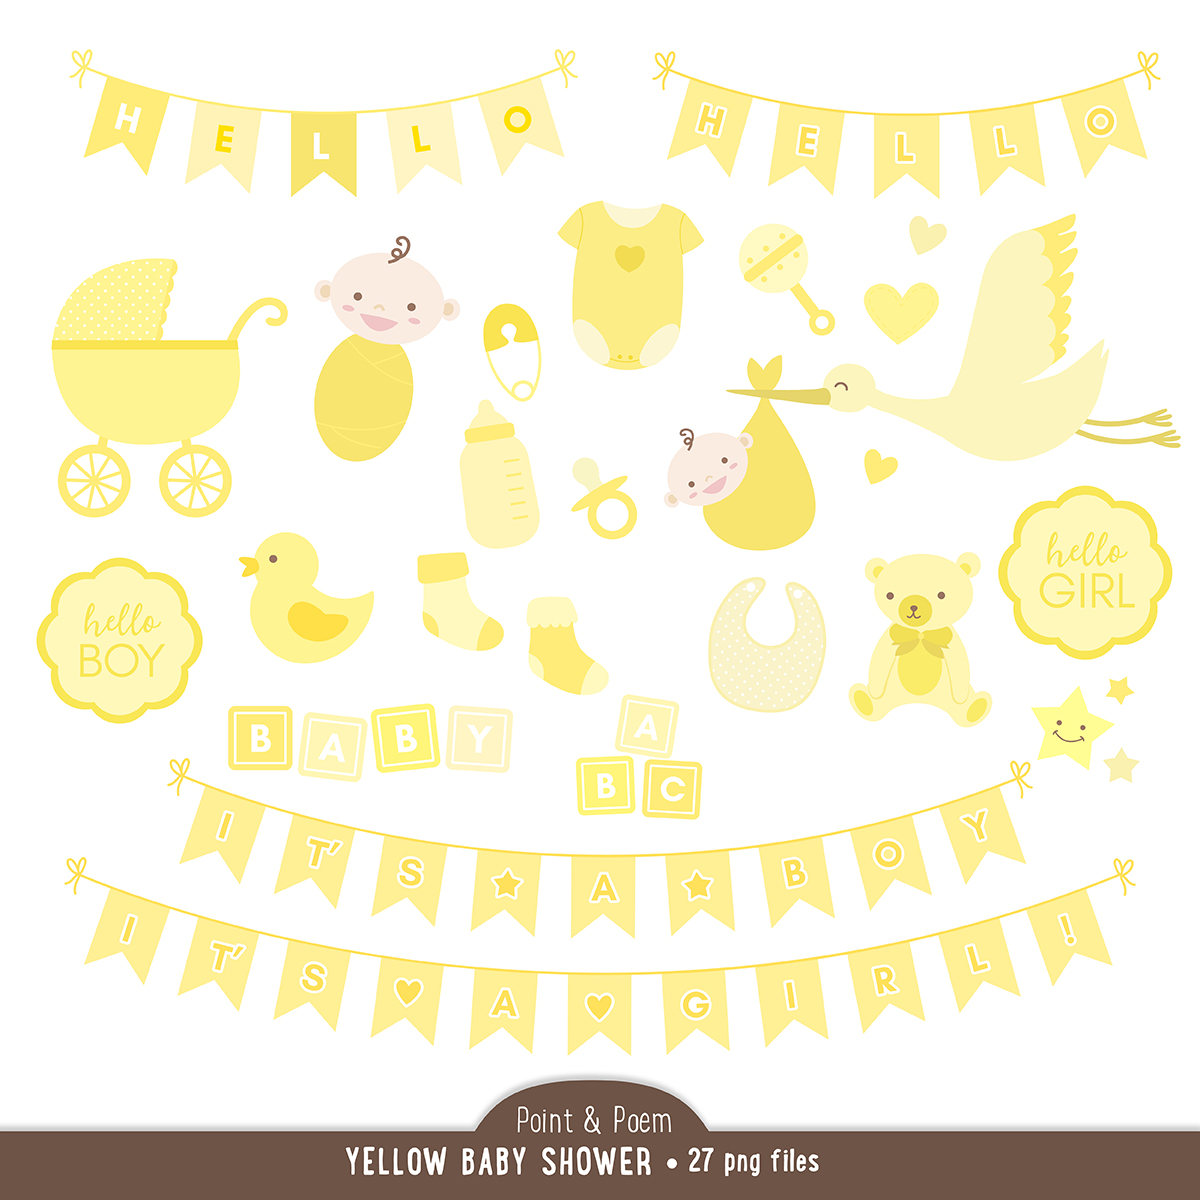 Teddy clipart yellow baby File This Gender Shower is